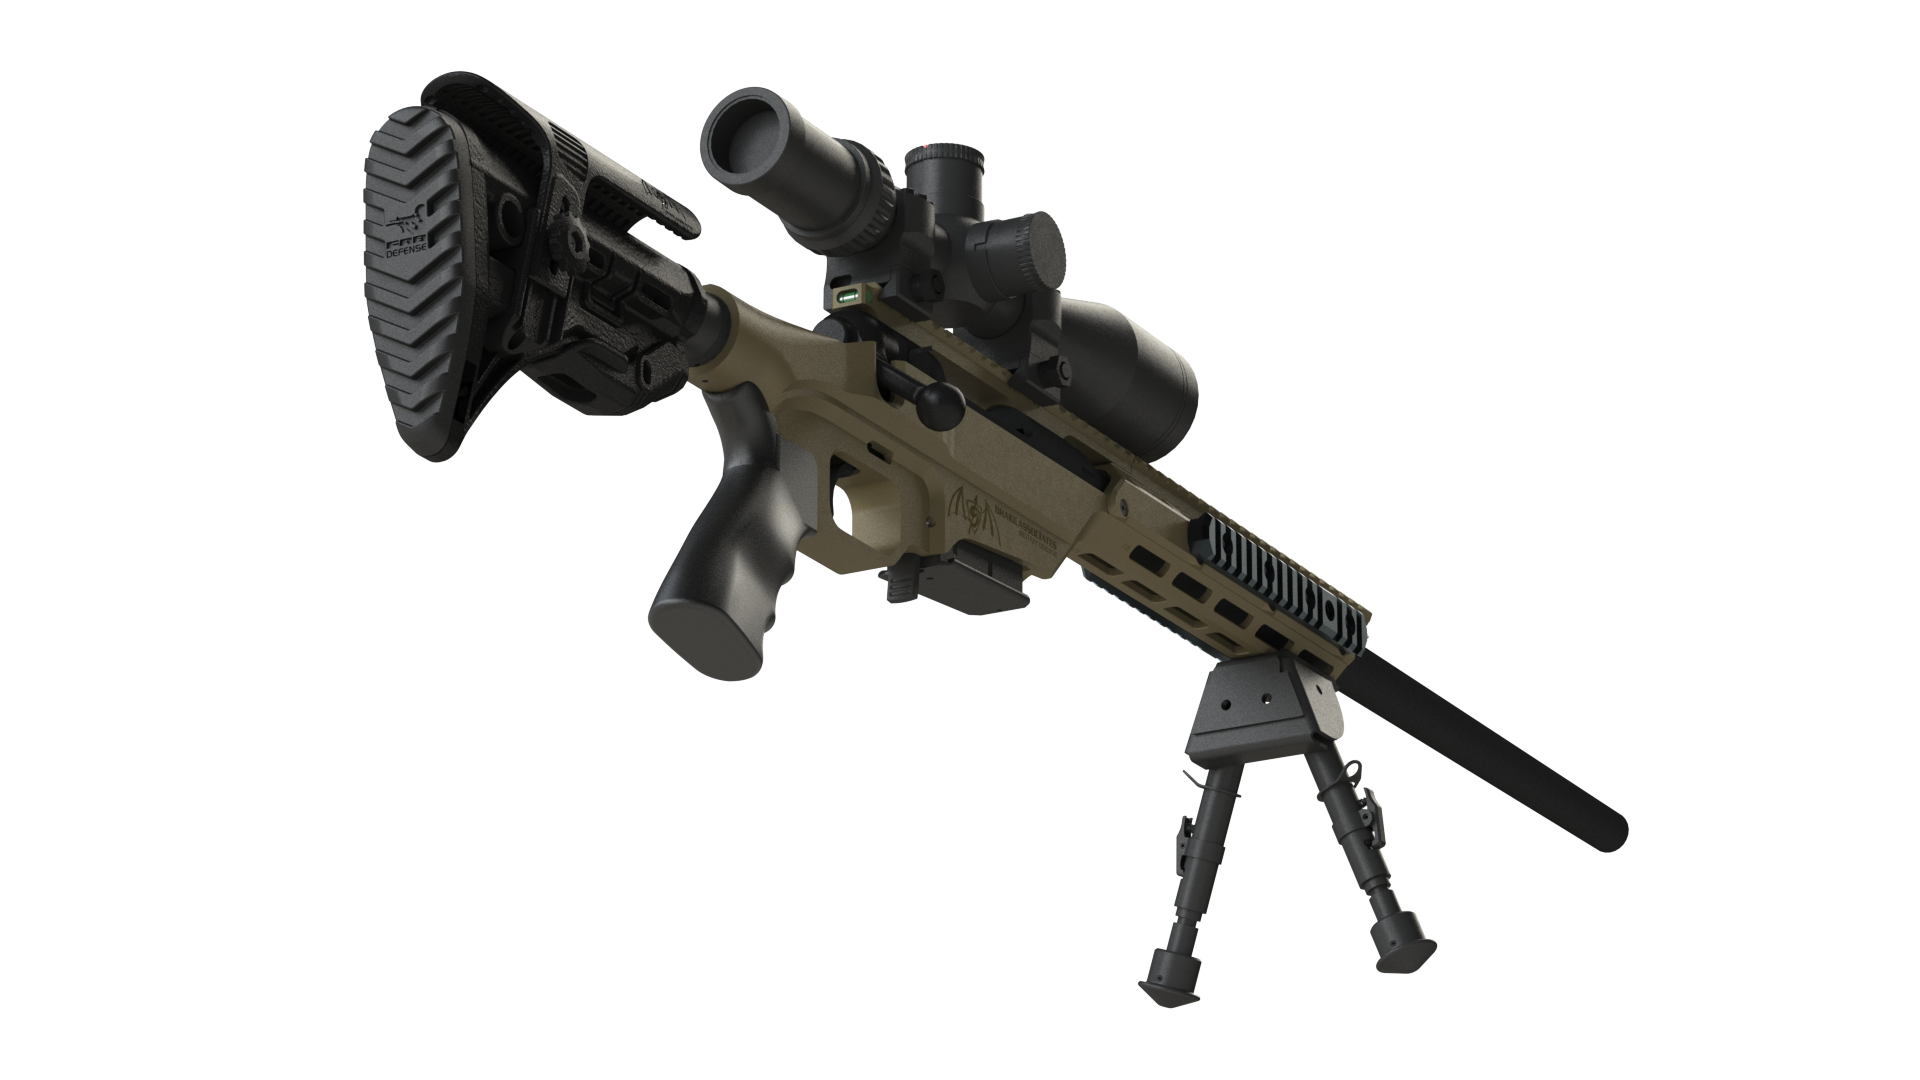 Download Animated Sniper Png Image For Free Png Images Png Sniper